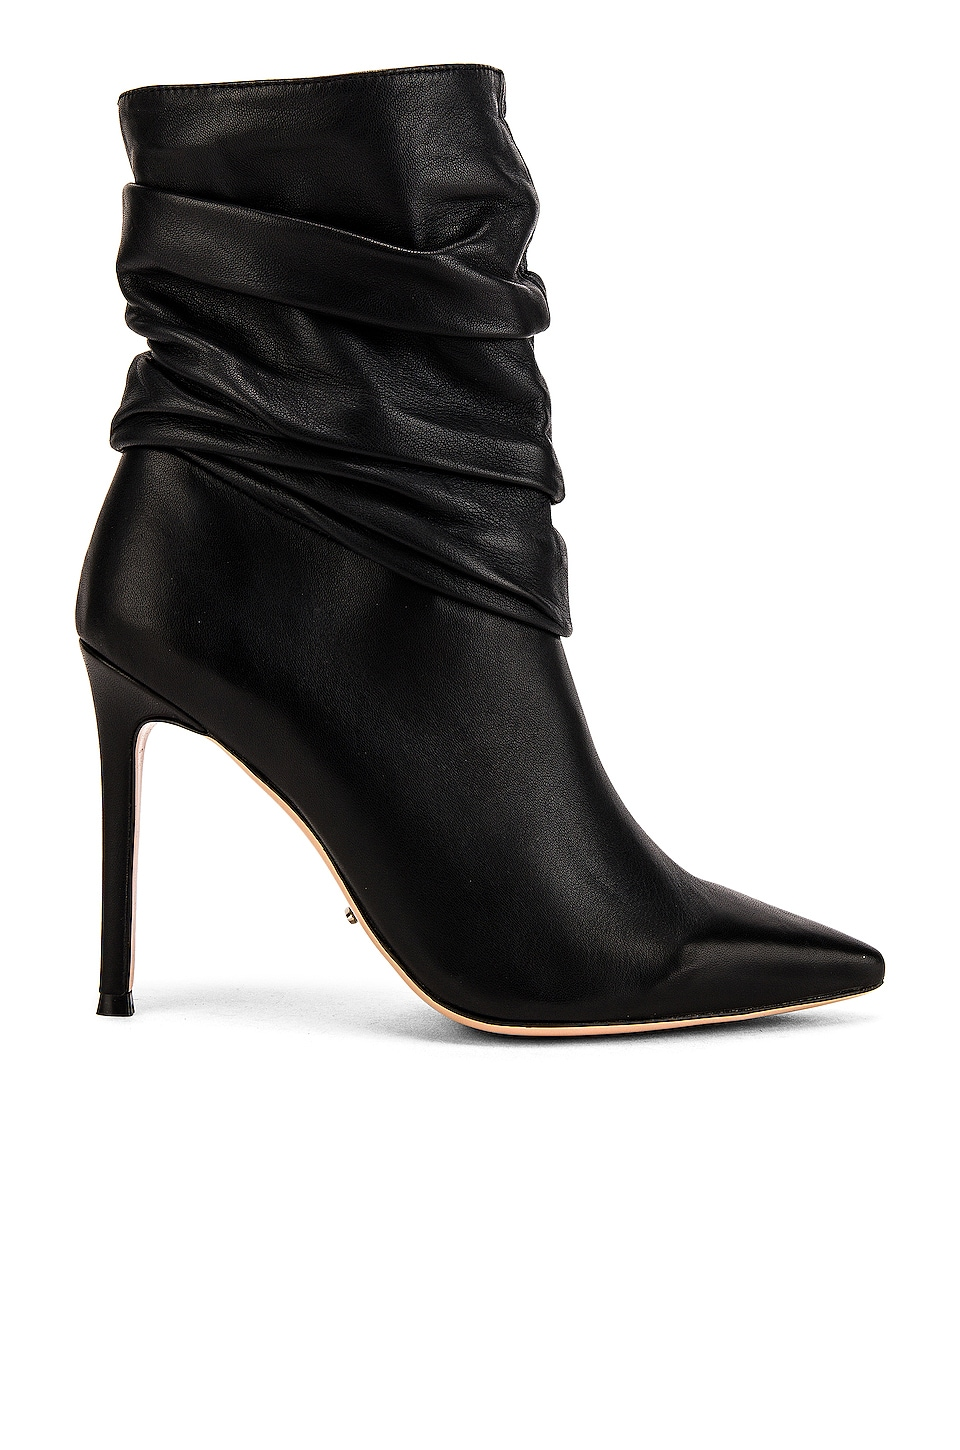 Tony Bianco Lane Boot in Black Florence